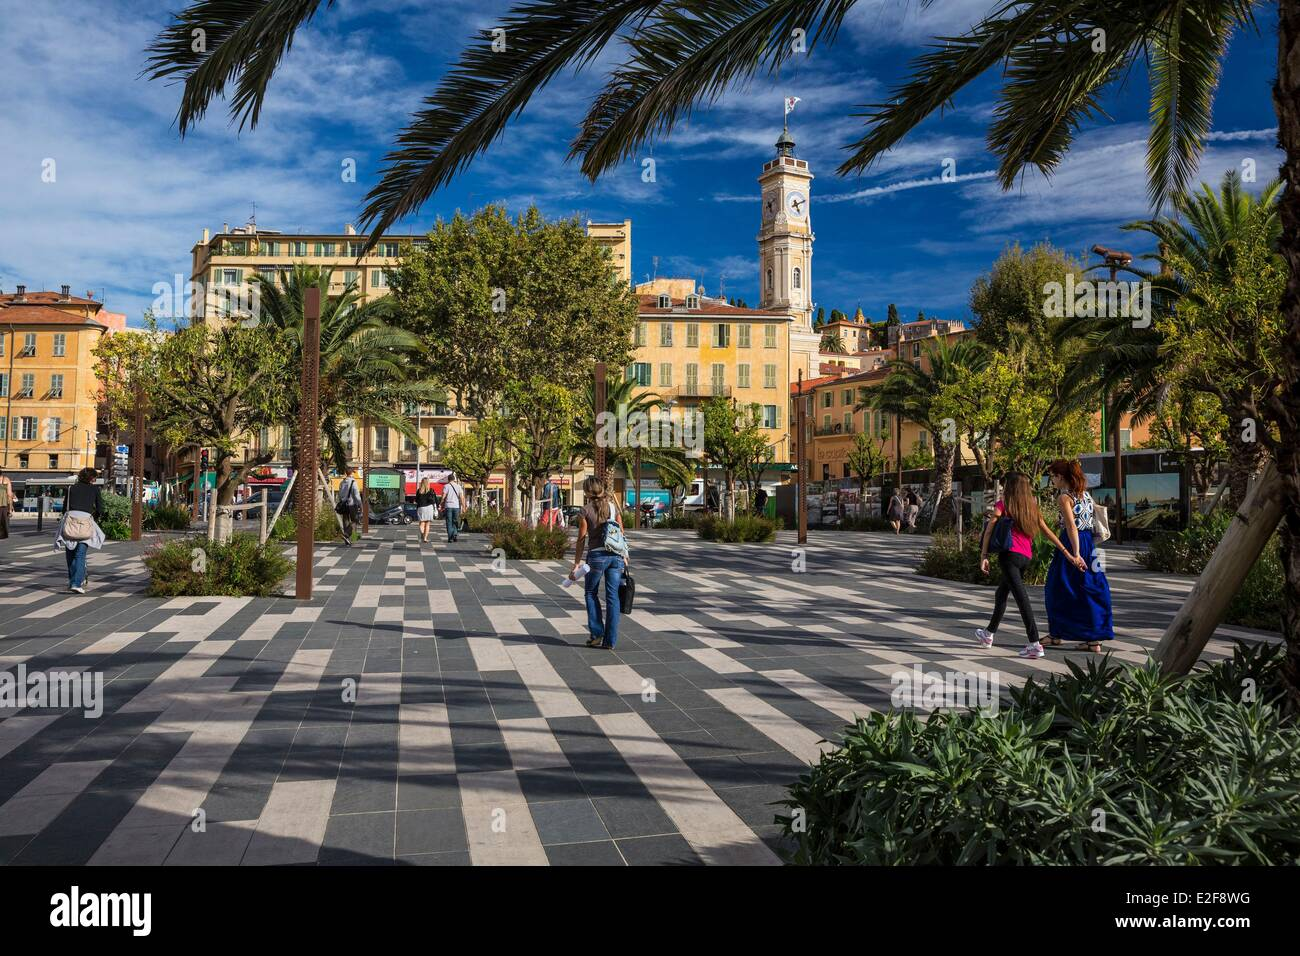 France Alpes Maritimes Nice old town the clock tower of the former convent of St Francis' minor friars and the - Stock Image